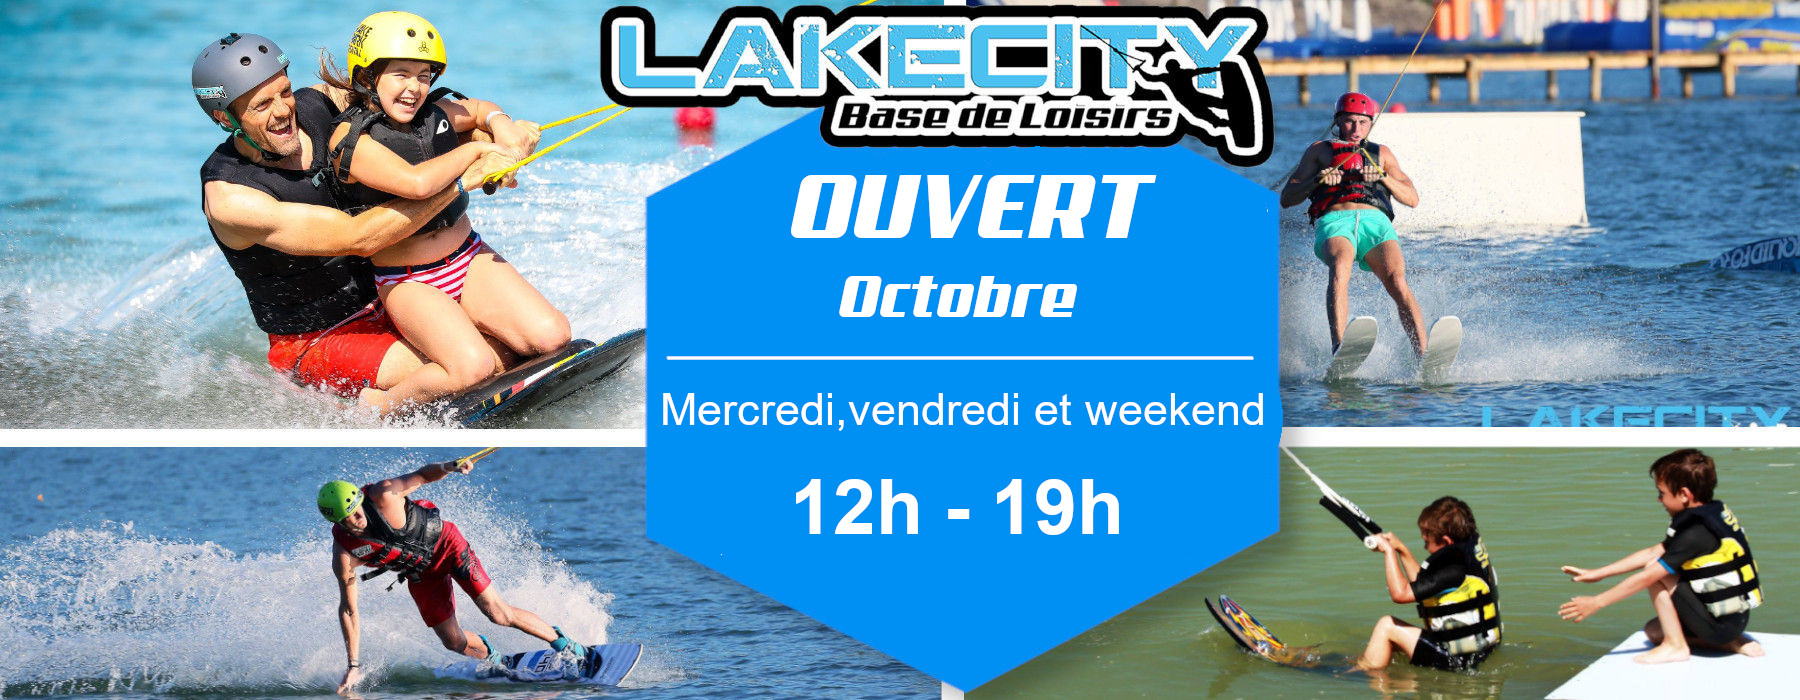 ouverture wakeboard octobre